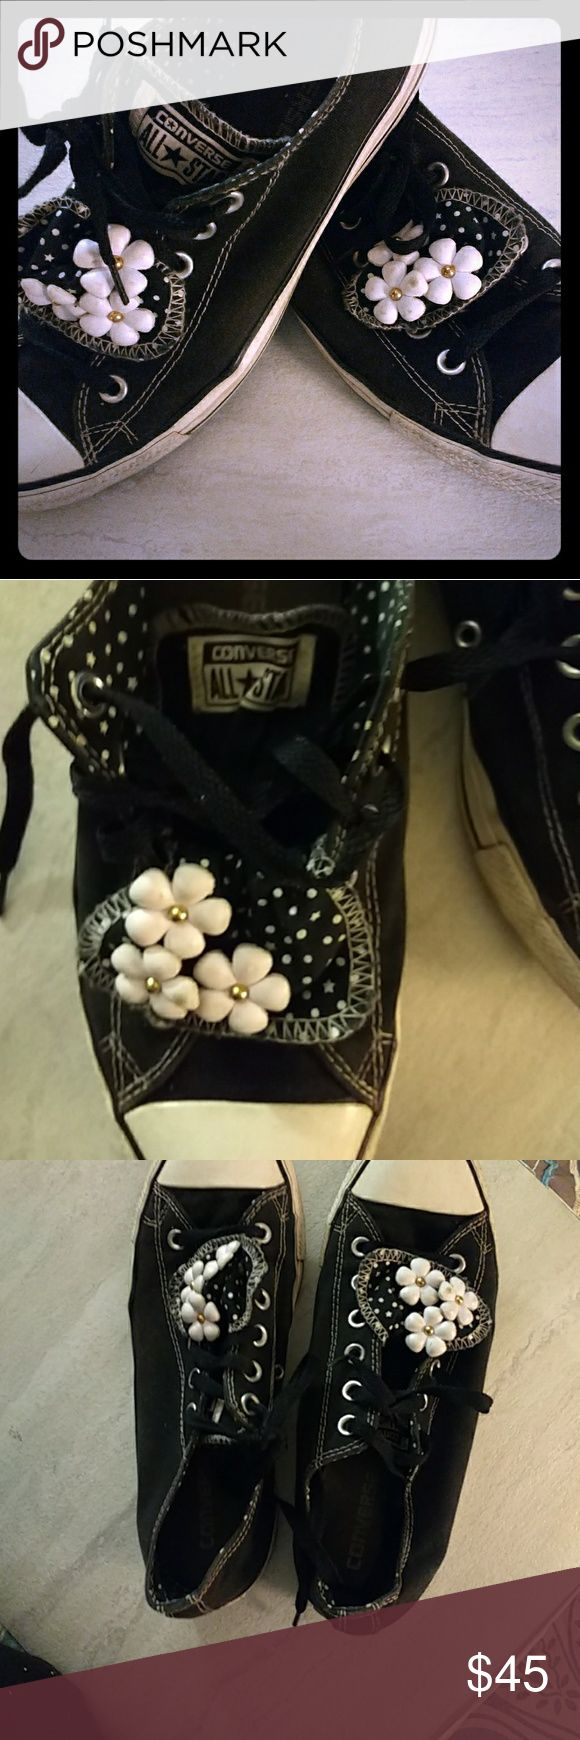 Rare Flower Tongue Converse Double tongue flower converse with black and white pokadots! Super cute! Tongue folds down so flowers show and stays down with laces run thru it and other tongue is normal.. Converse Shoes Sneakers